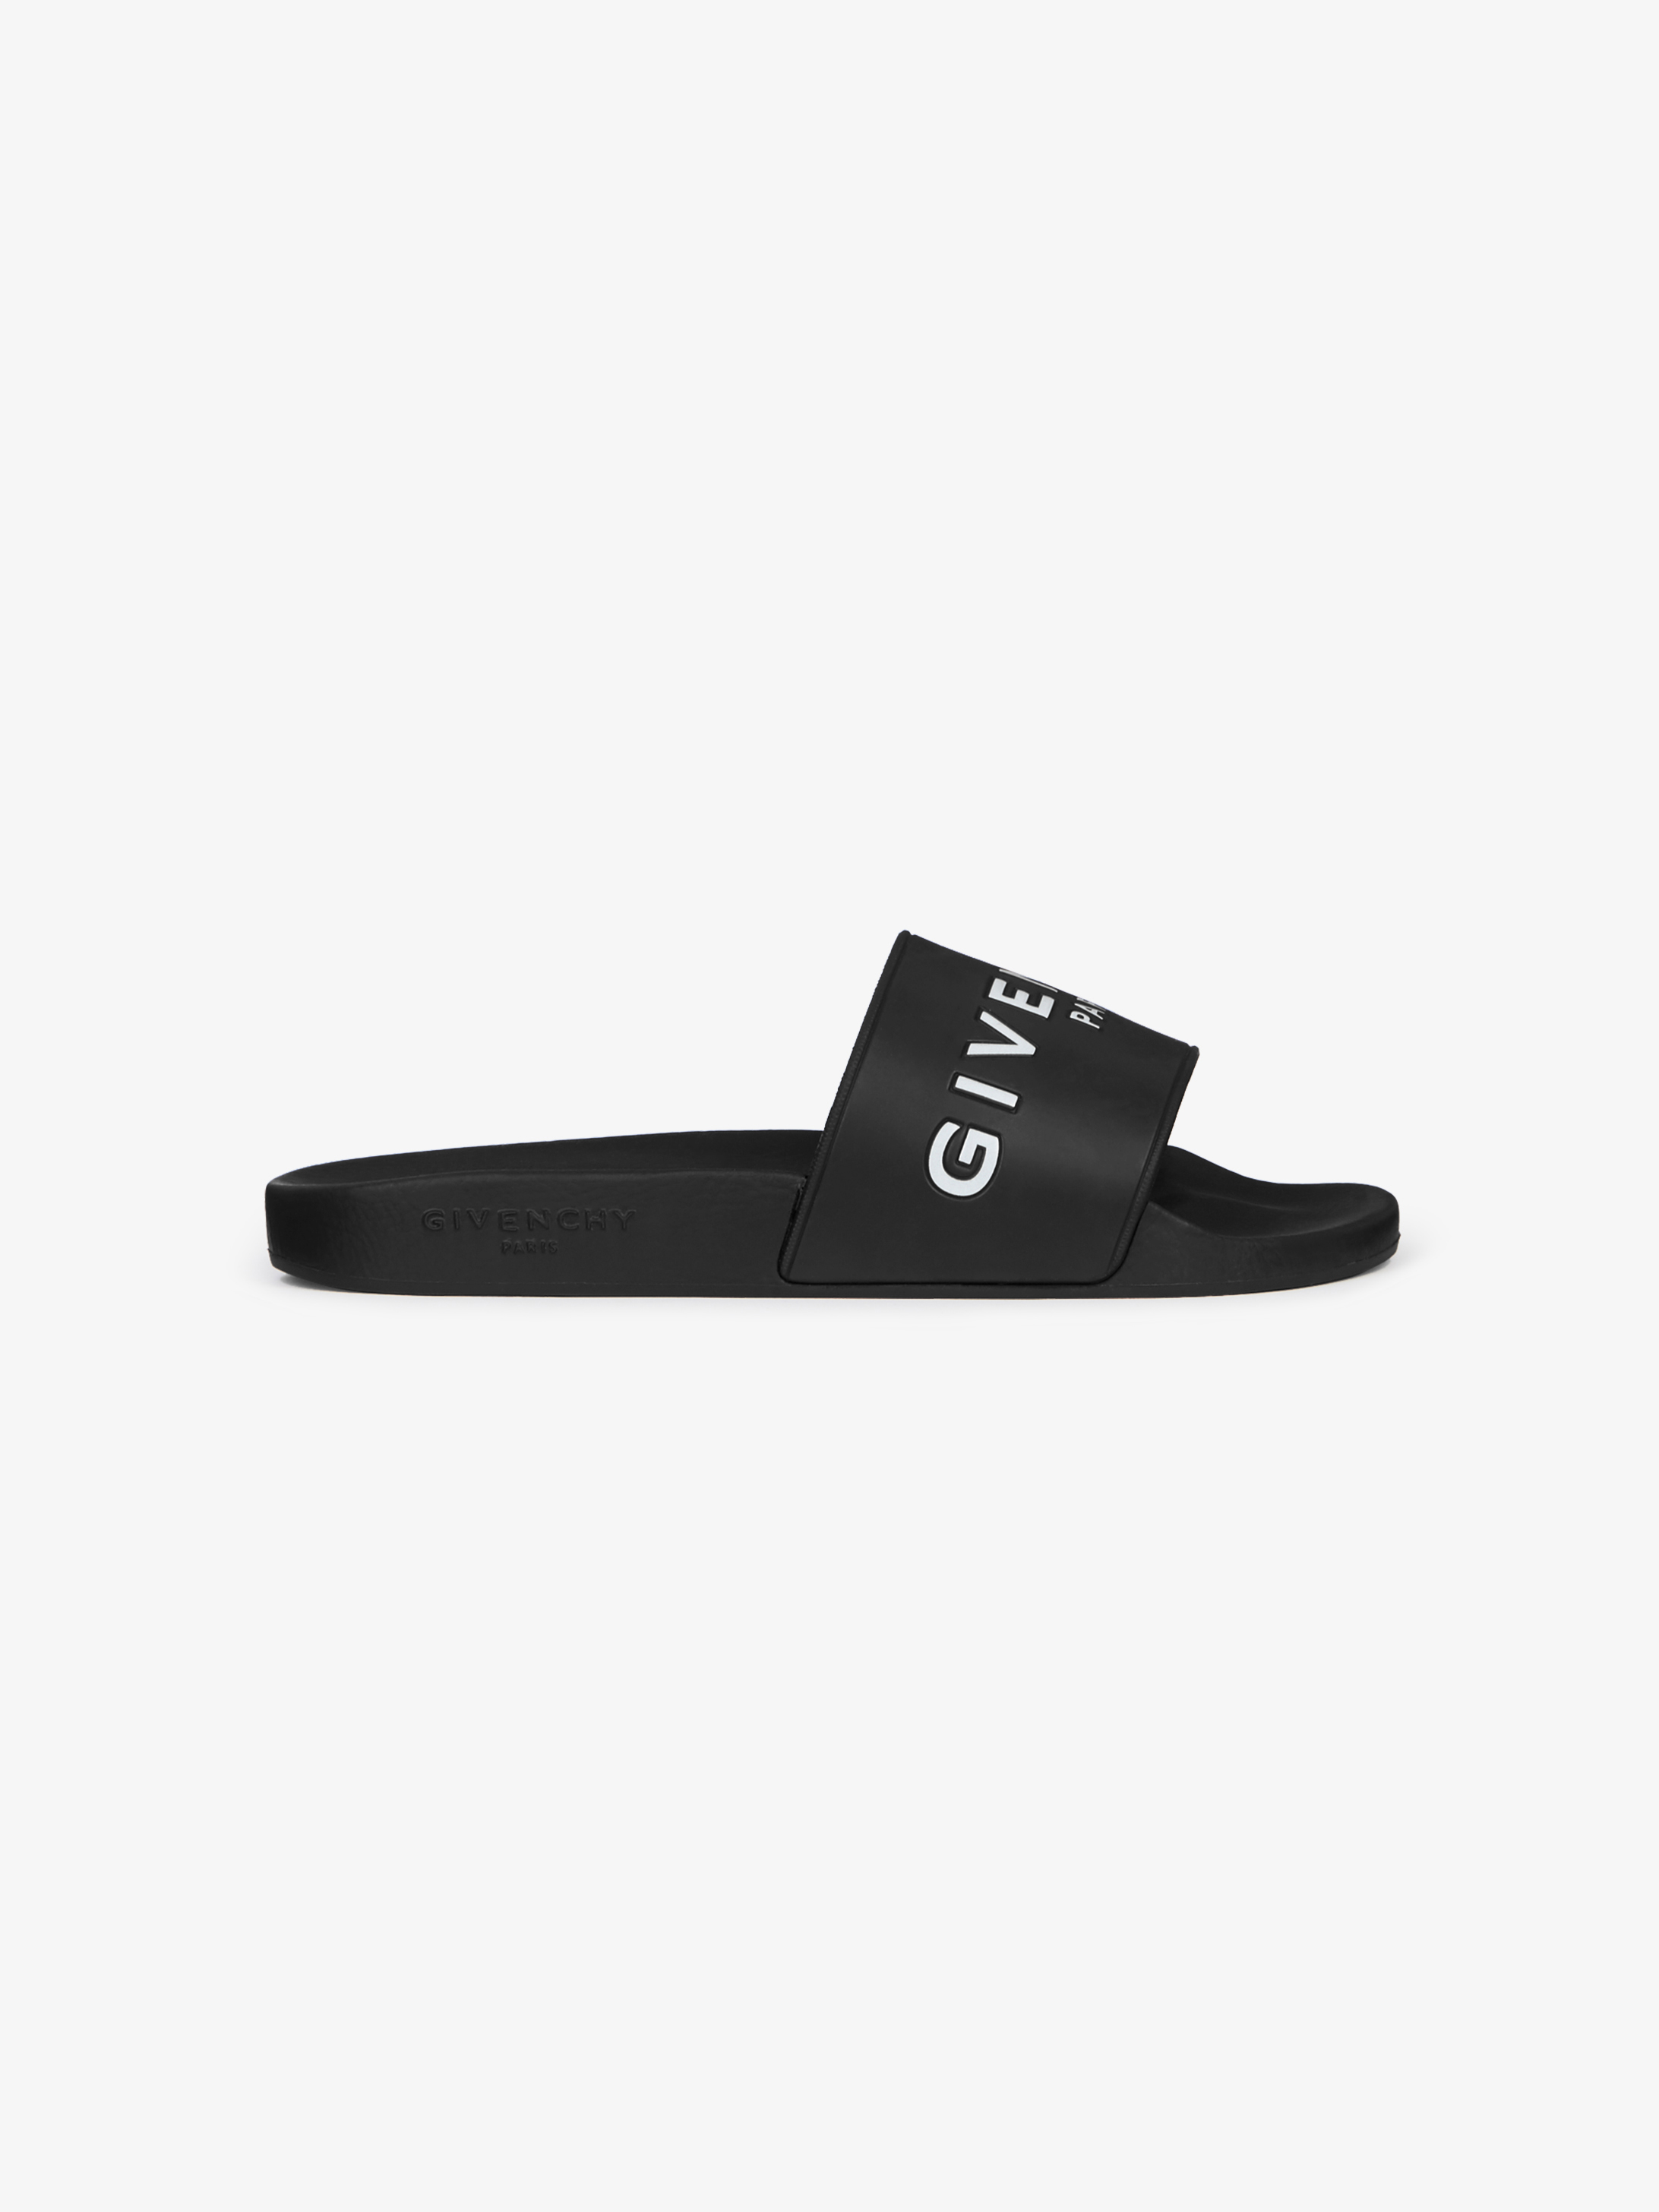 Slipper piatti di gomma GIVENCHY PARIS